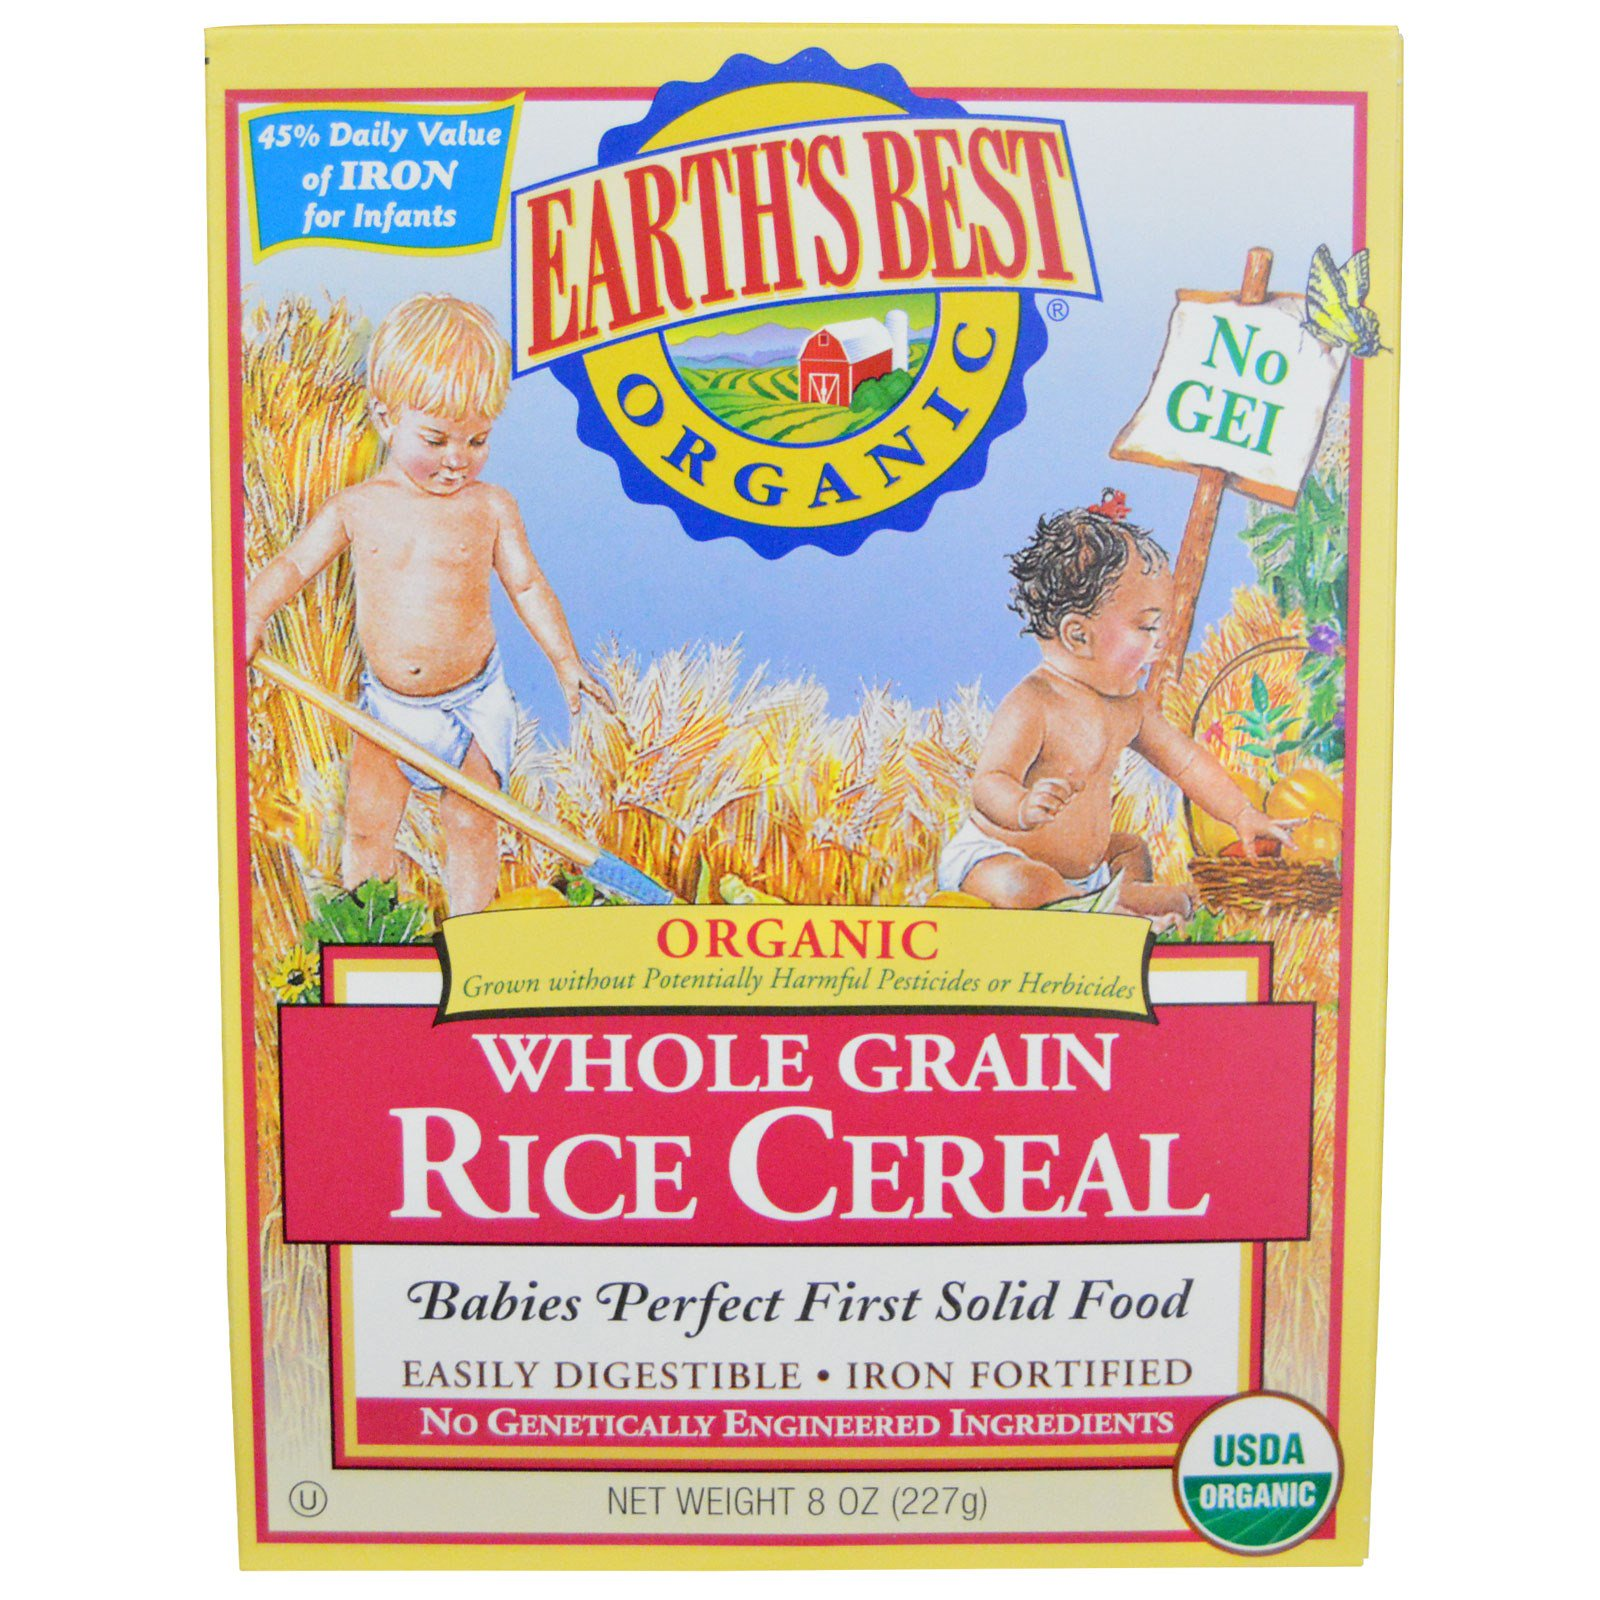 Earth's Best, Organic, Whole Grain Rice Cereal, 8 Oz (227